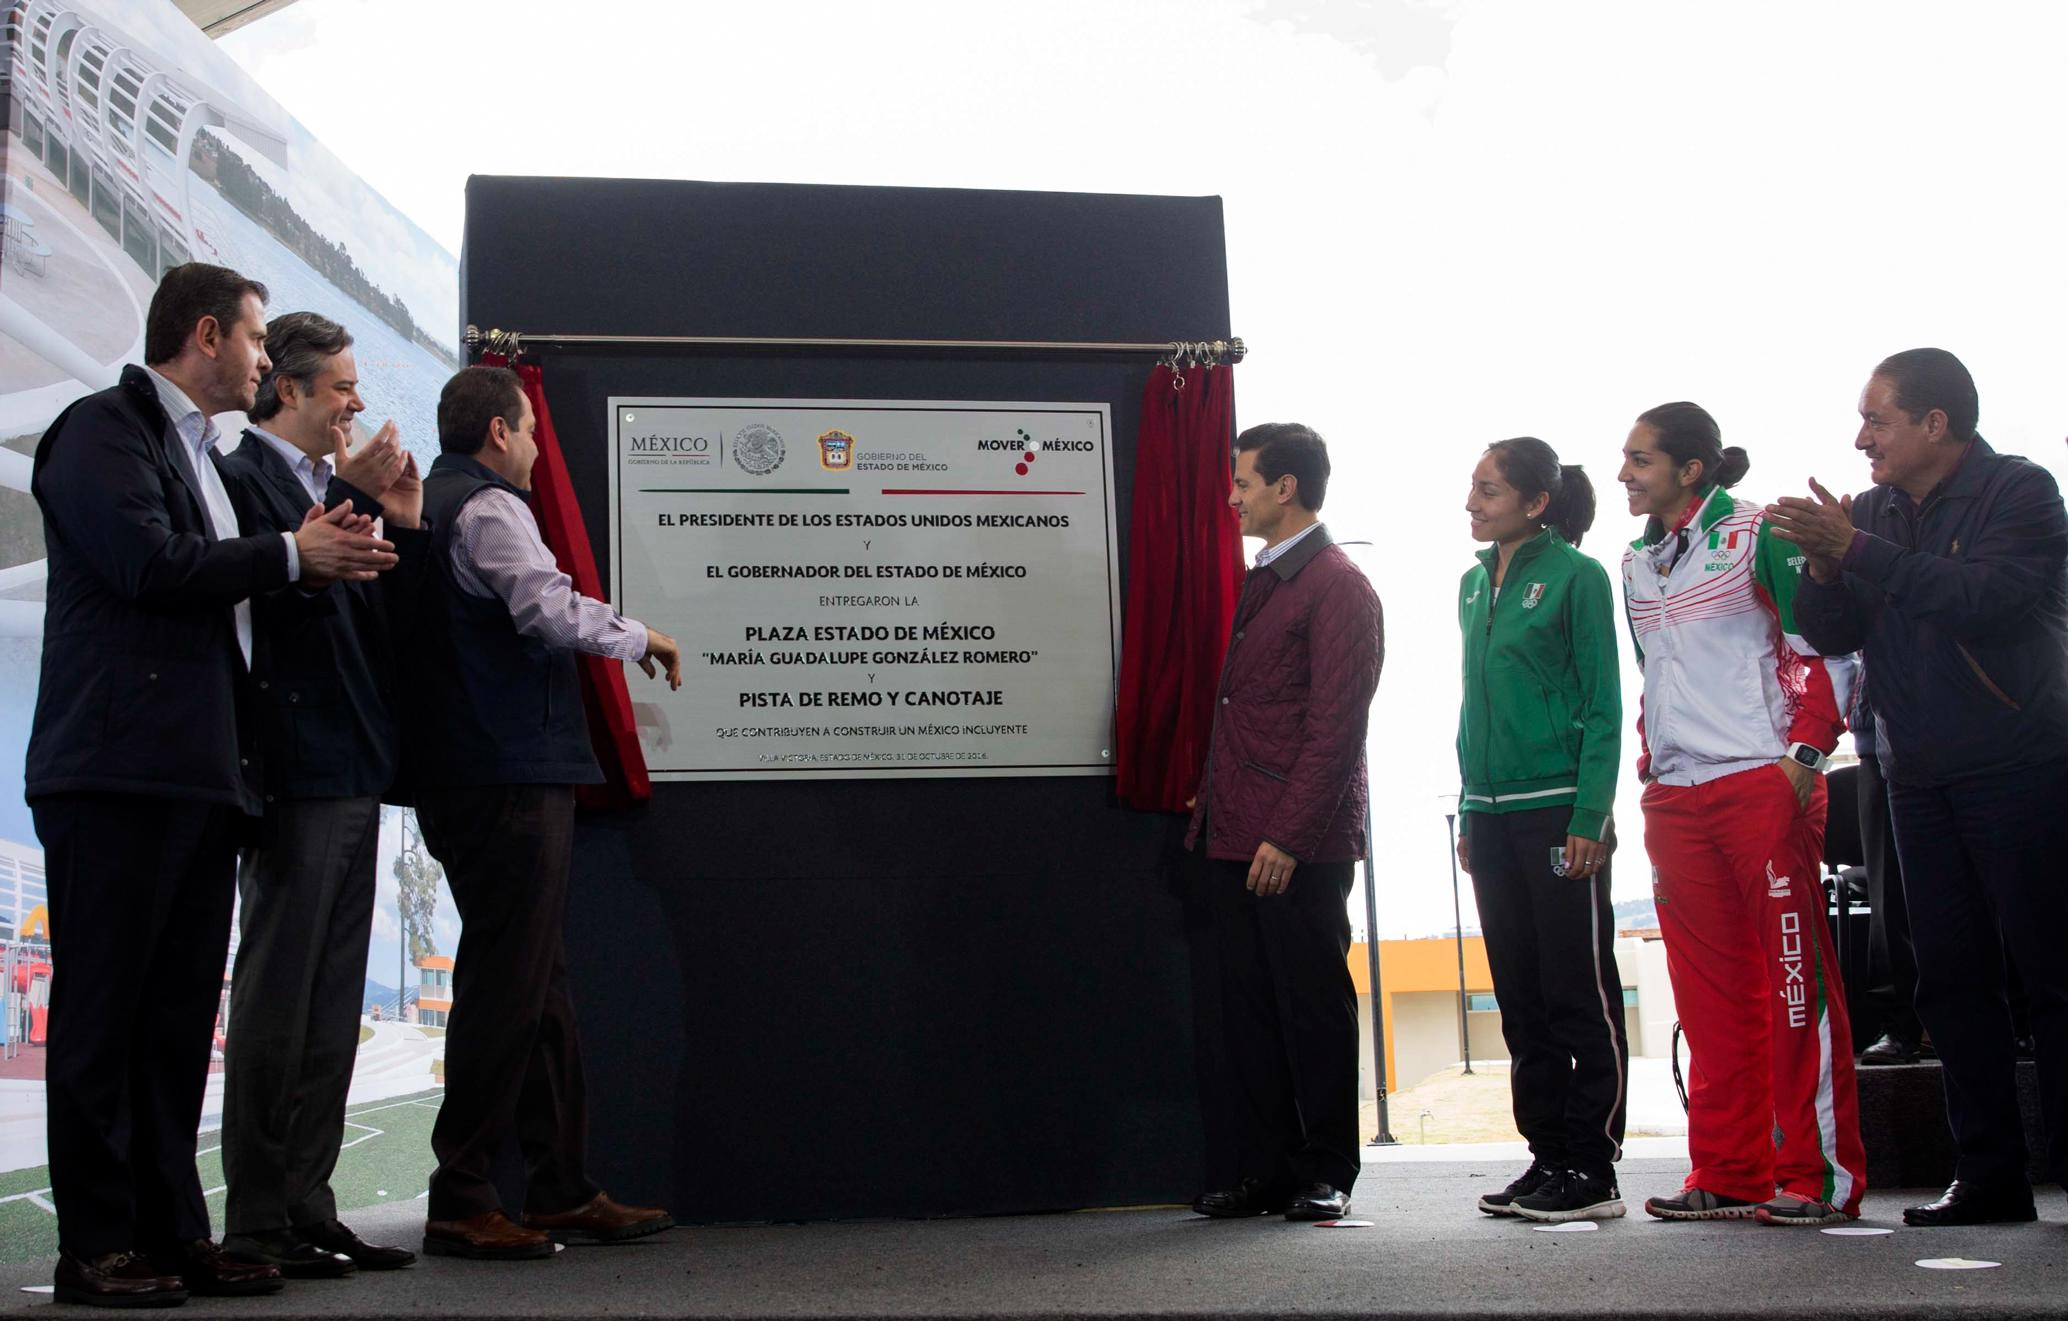 The president delivered the Villa Victoria Rowing and Canoeing Course, and the Maria Guadalupe González Romero State of Mexico Square.